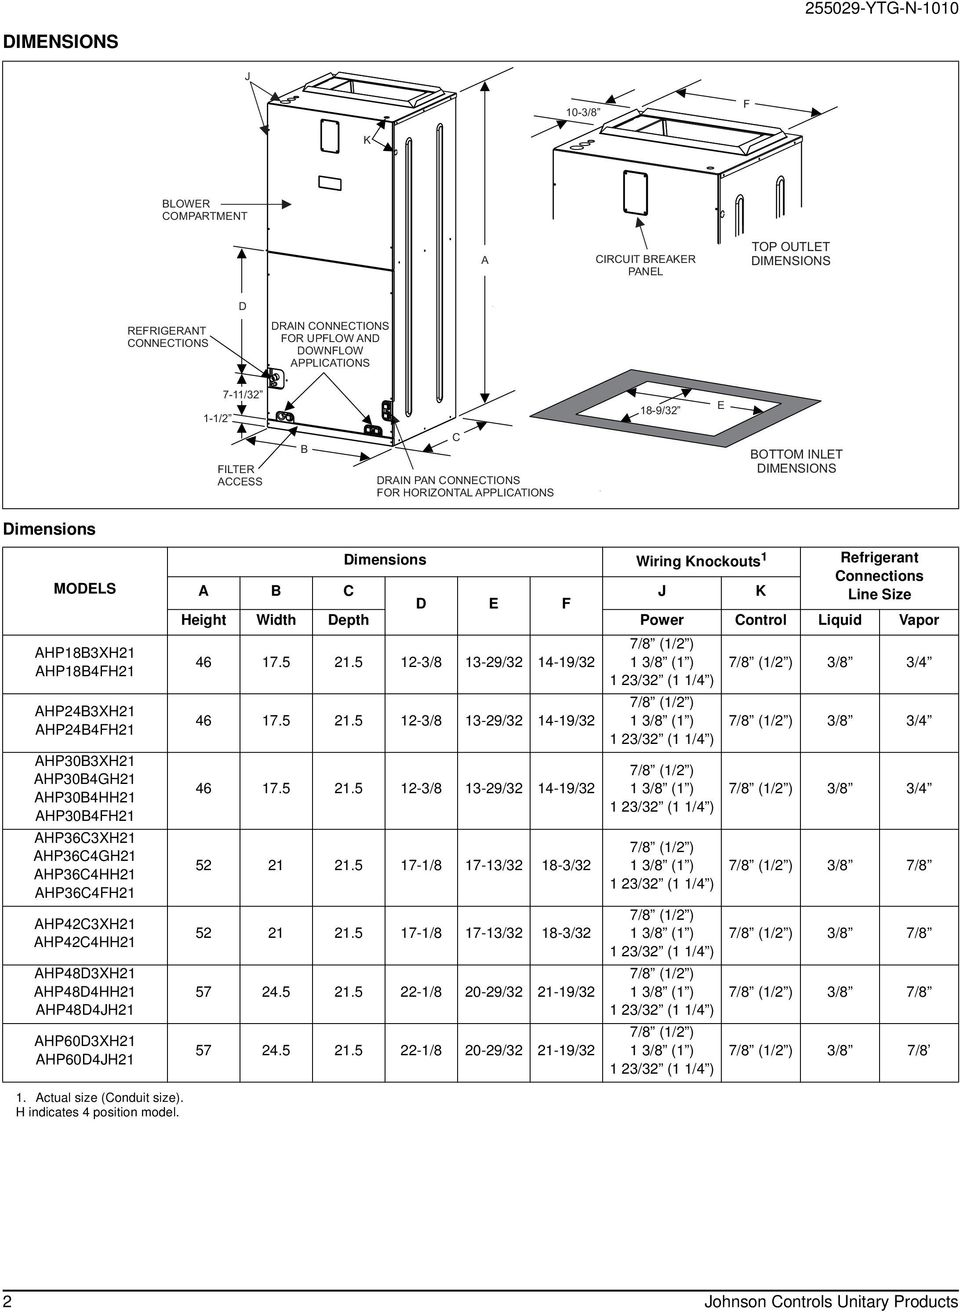 York Ahp60d3xh21 Air Handler Wiring Diagram Schematics Central Technical Guide Single Piece Handlers For Use With Split System Rh Docplayer Net Thermostat Coleman